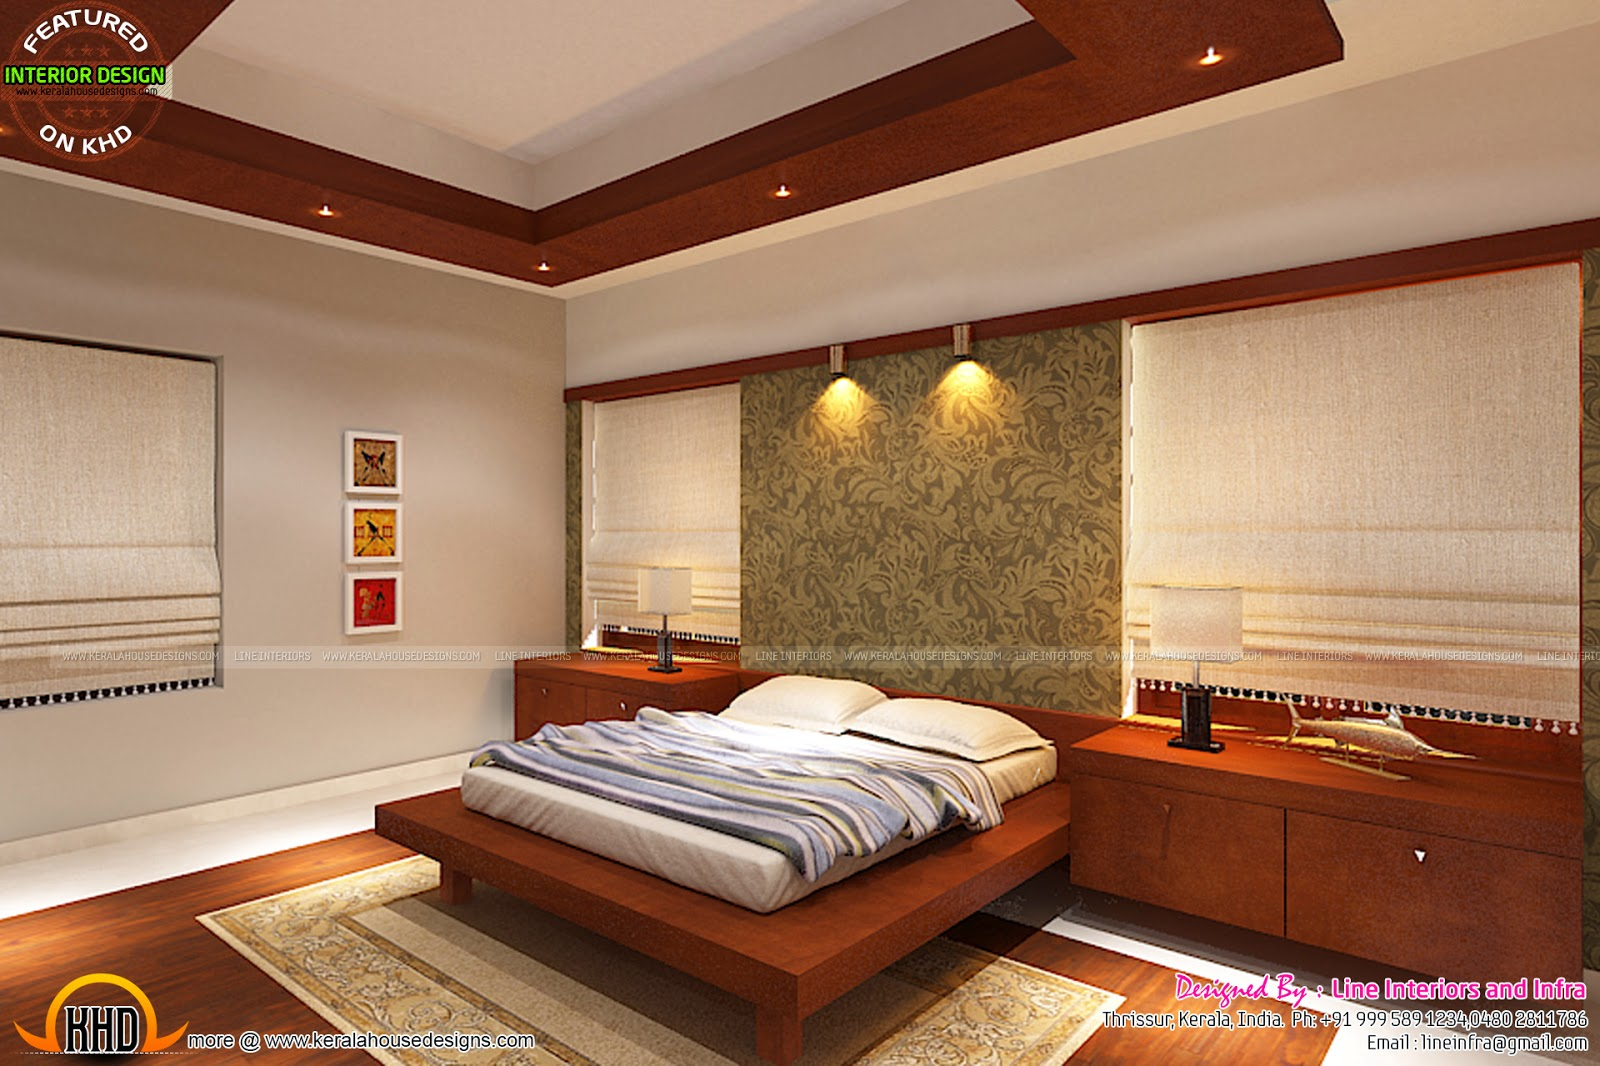 Interiors Design By Line And Infra